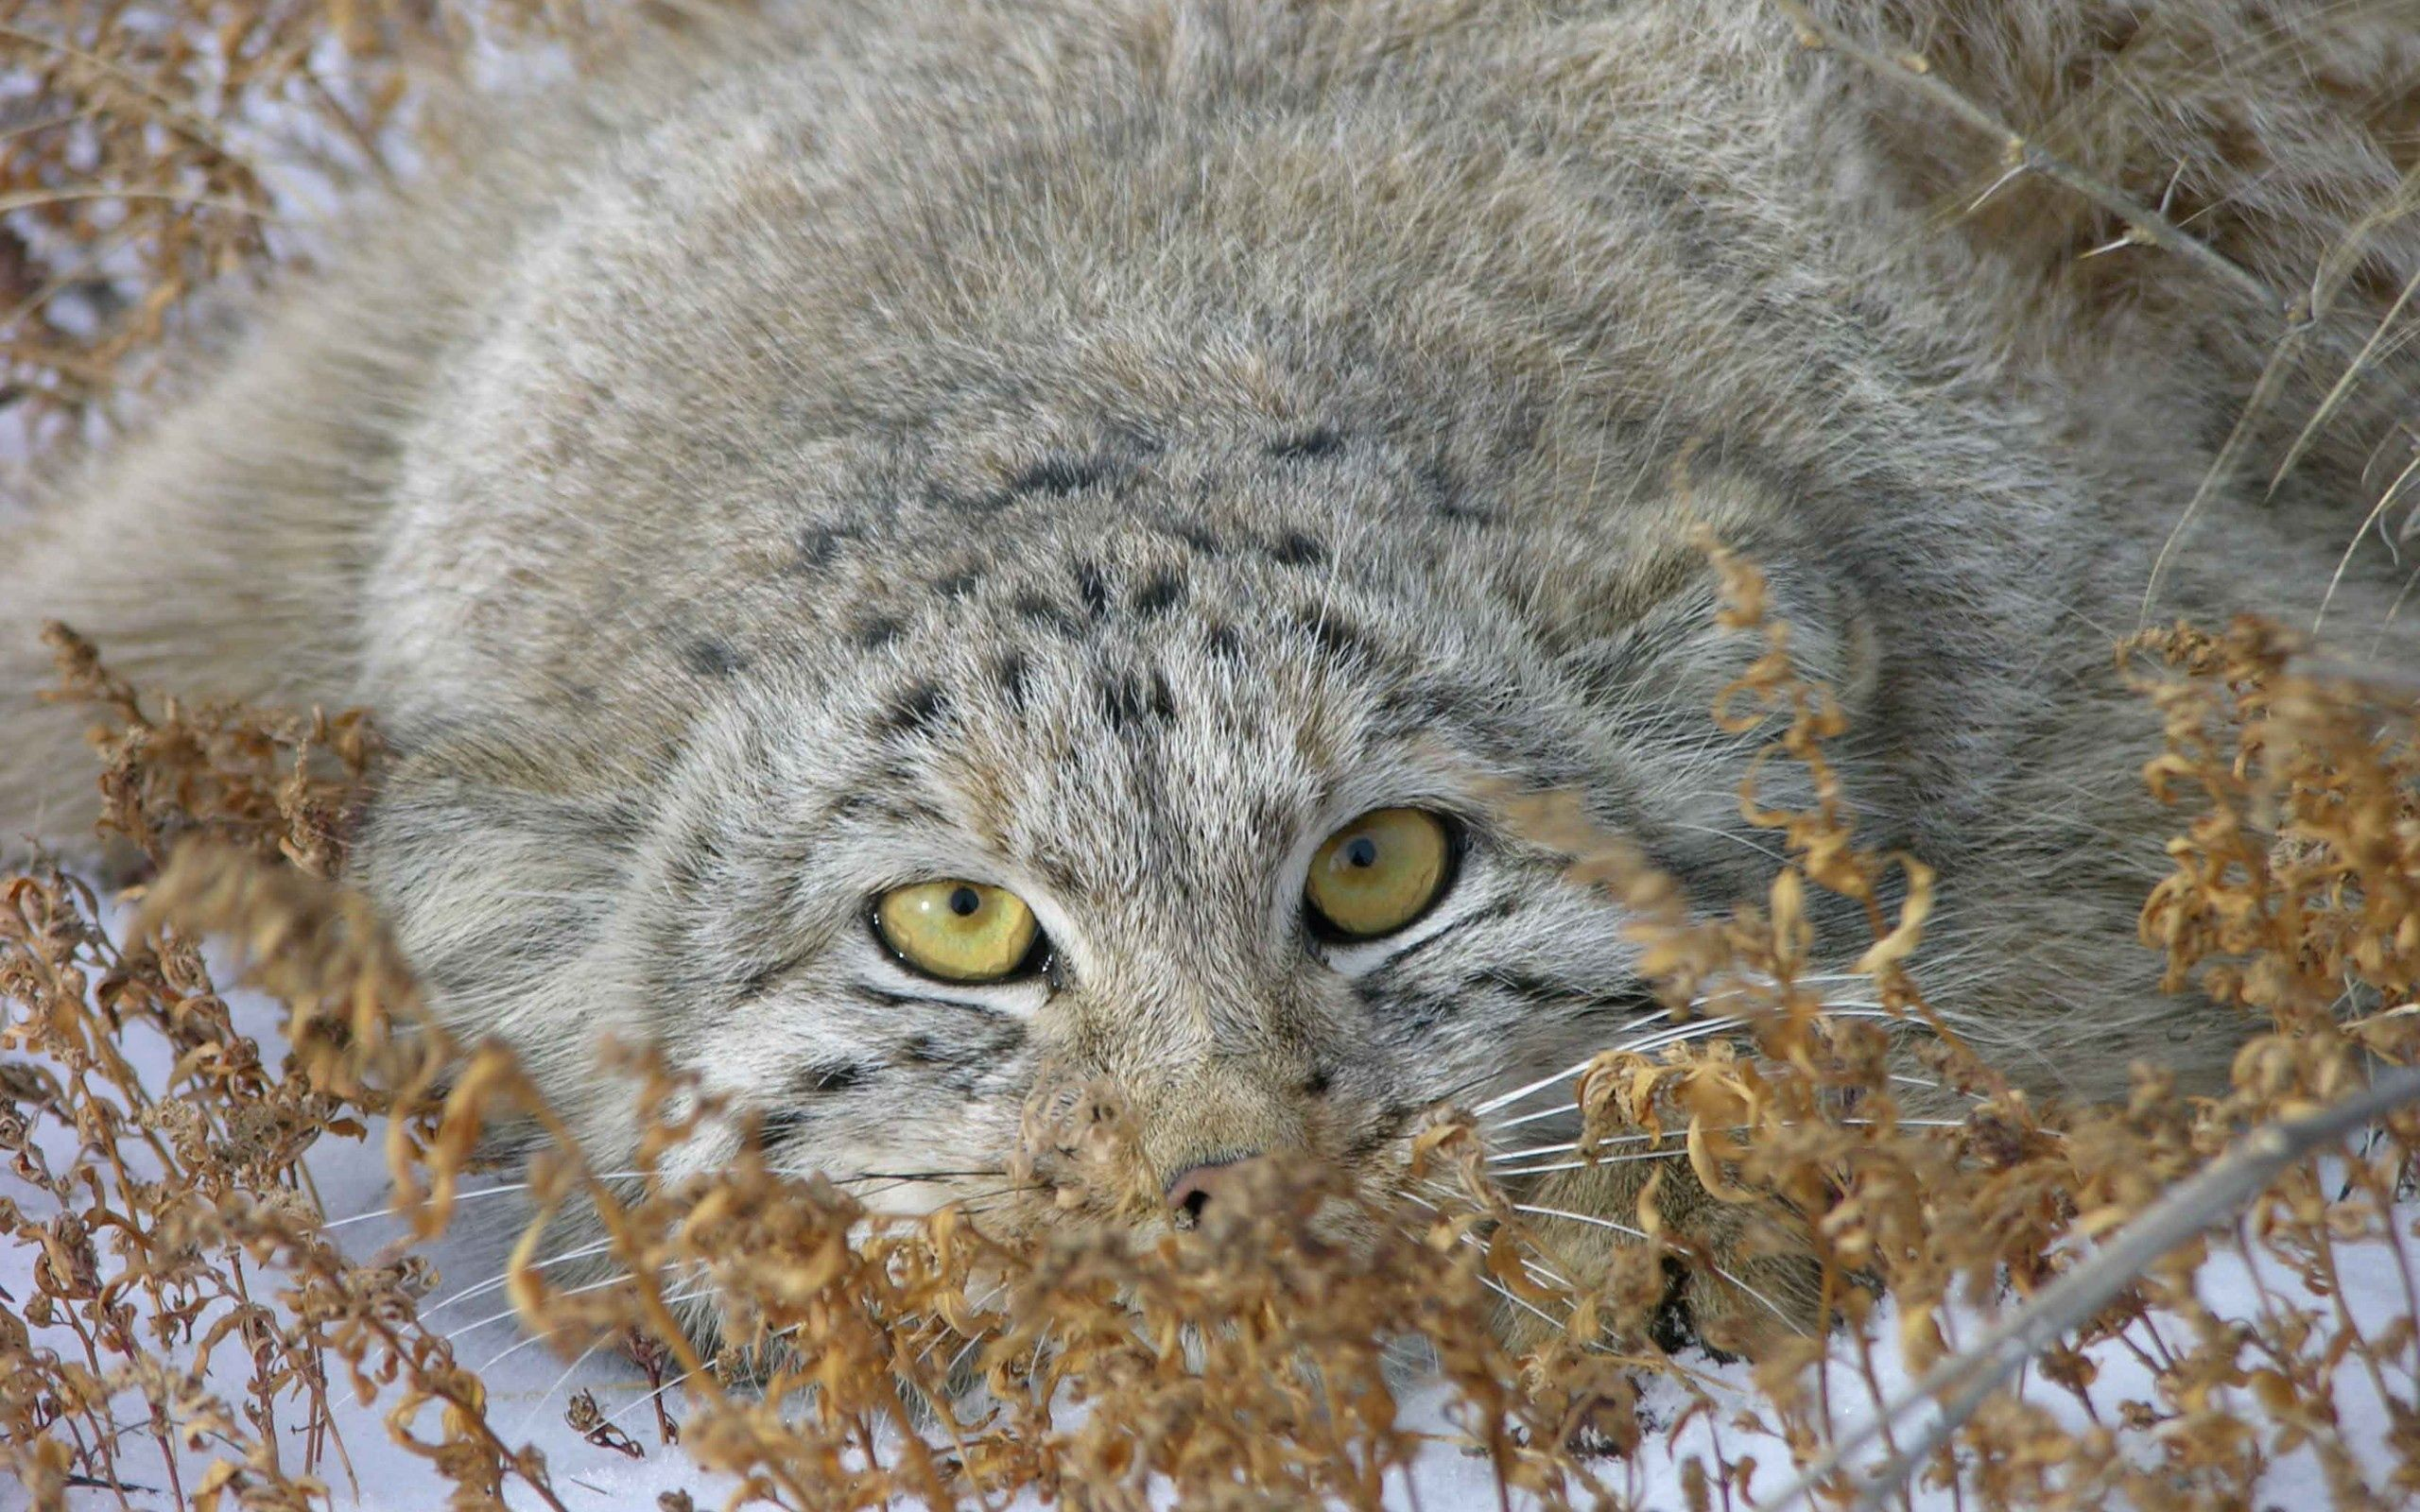 122399 download wallpaper Animals, Pallas' Cat, Manul, Muzzle, Peek Out, Look Out, Grass screensavers and pictures for free